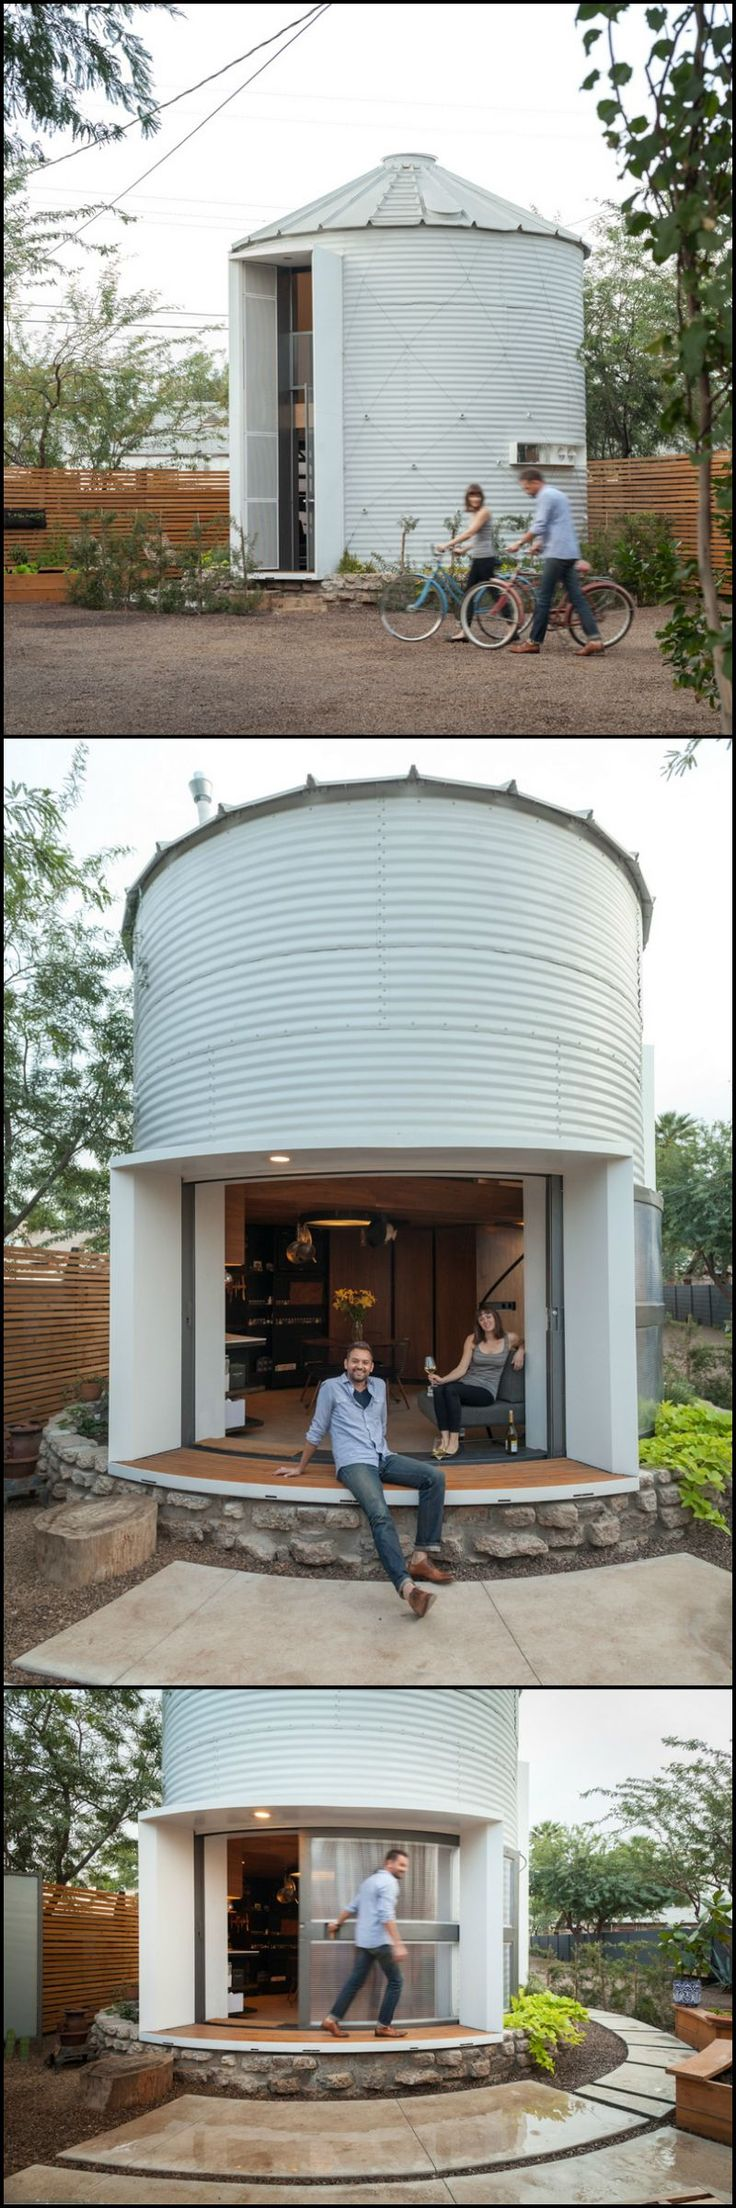 While driving though Kansas, architect Christoph Kaiser, noticed a dismantled, 1955 era grain silo...  View the transformation of an abandoned grain silo to a comfortable home for two here: http://architecture.ideas2live4.com/2015/08/08/from-grain-silo-to-a-comfortable-home/   The idea was to create a comfortable, affordable and sustainable home from a very compact space with the lowest possible carbon footprint!